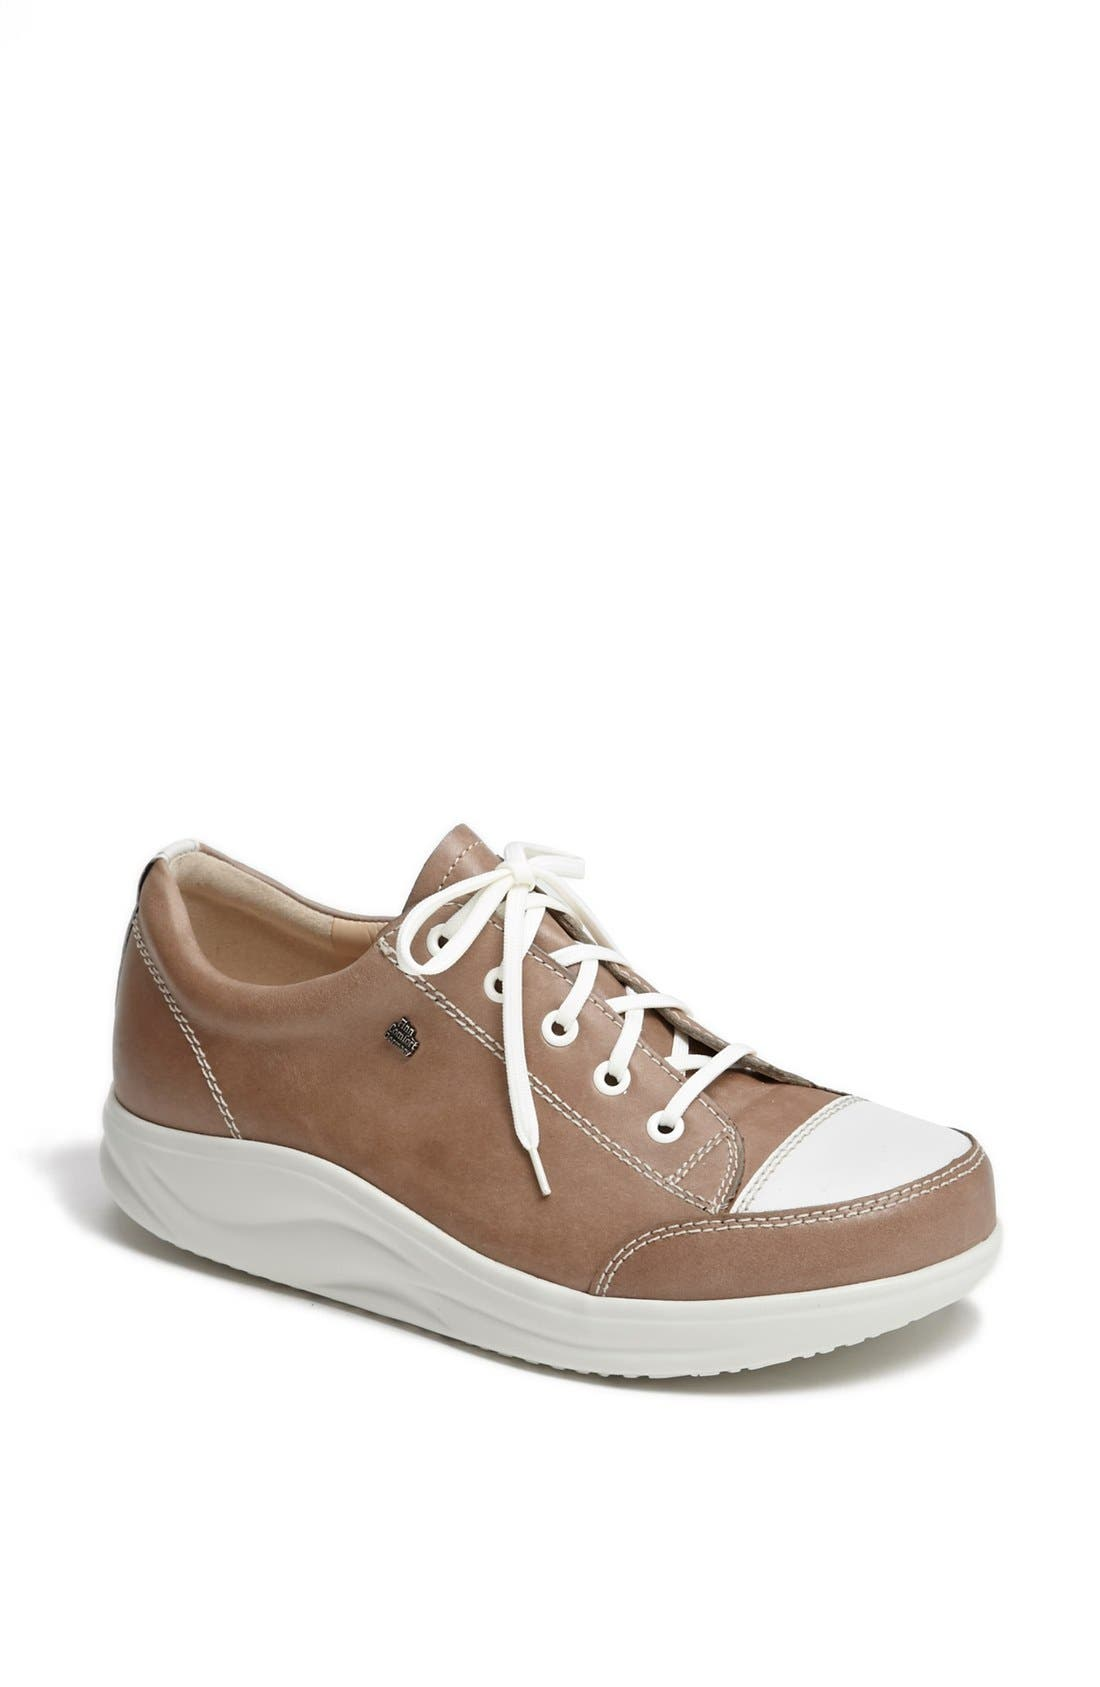 FINNAMIC by Finn Comfort 'Ikebukuro' Walking Shoe